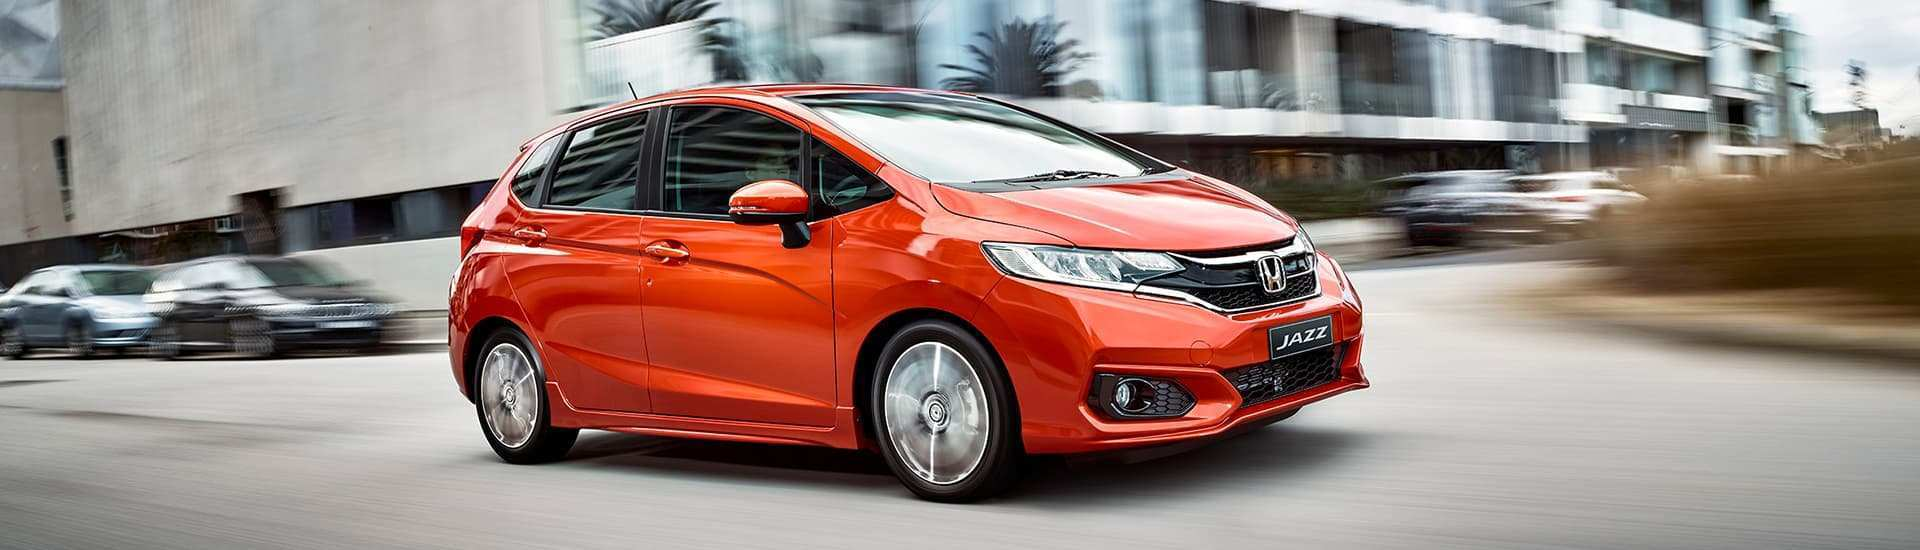 89 All New Best Honda Jazz 2019 Australia First Drive Pricing with Best Honda Jazz 2019 Australia First Drive